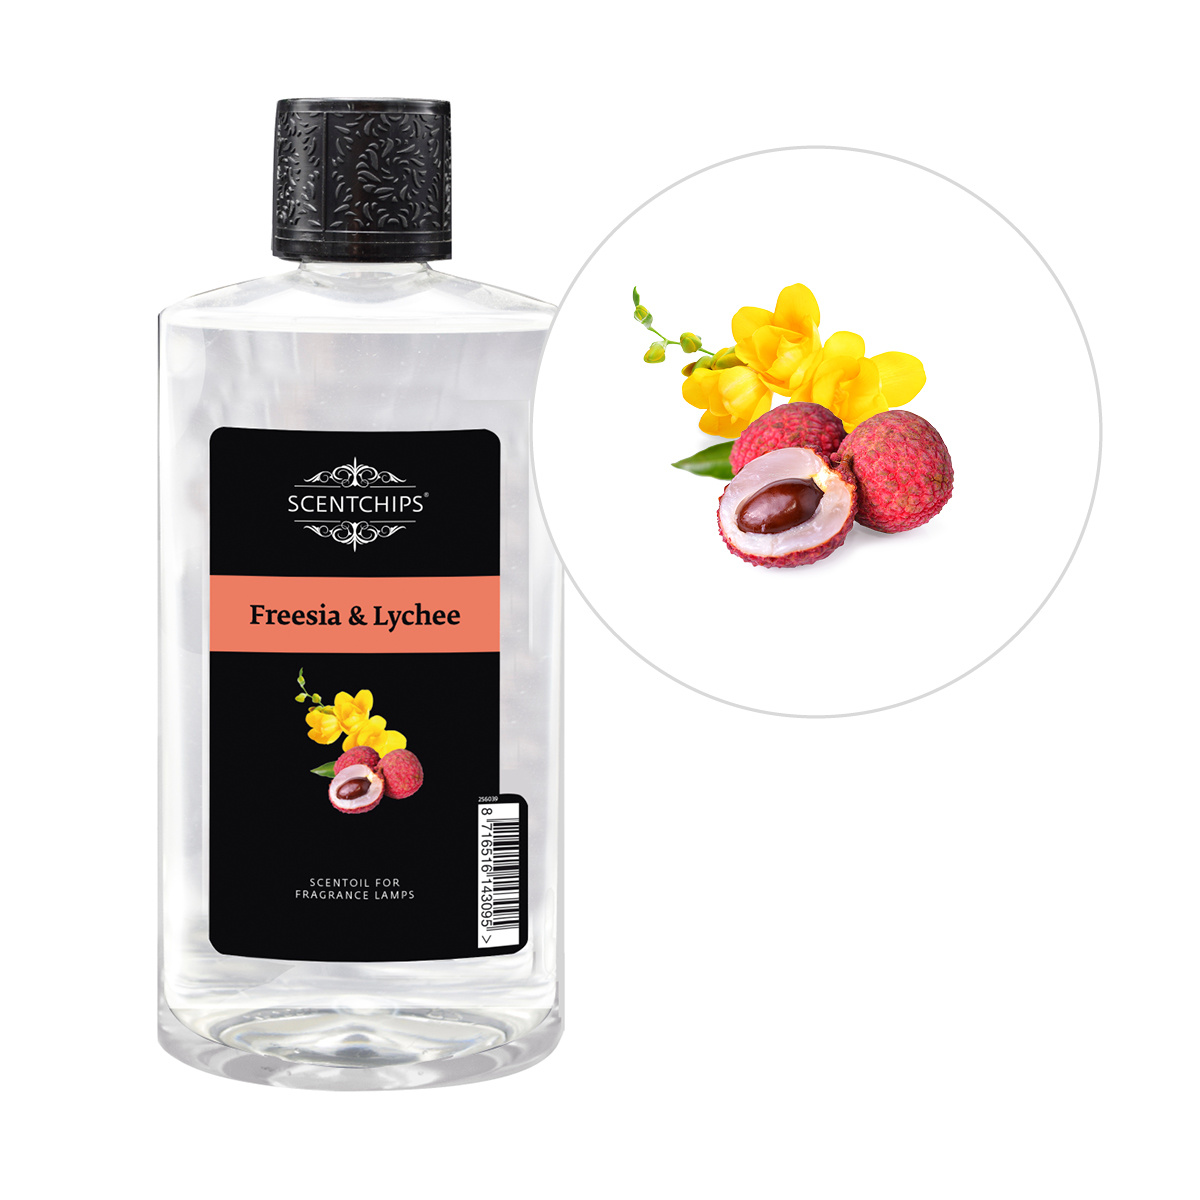 Scentchips® Freesia & Lychee fragrance oil ScentOil